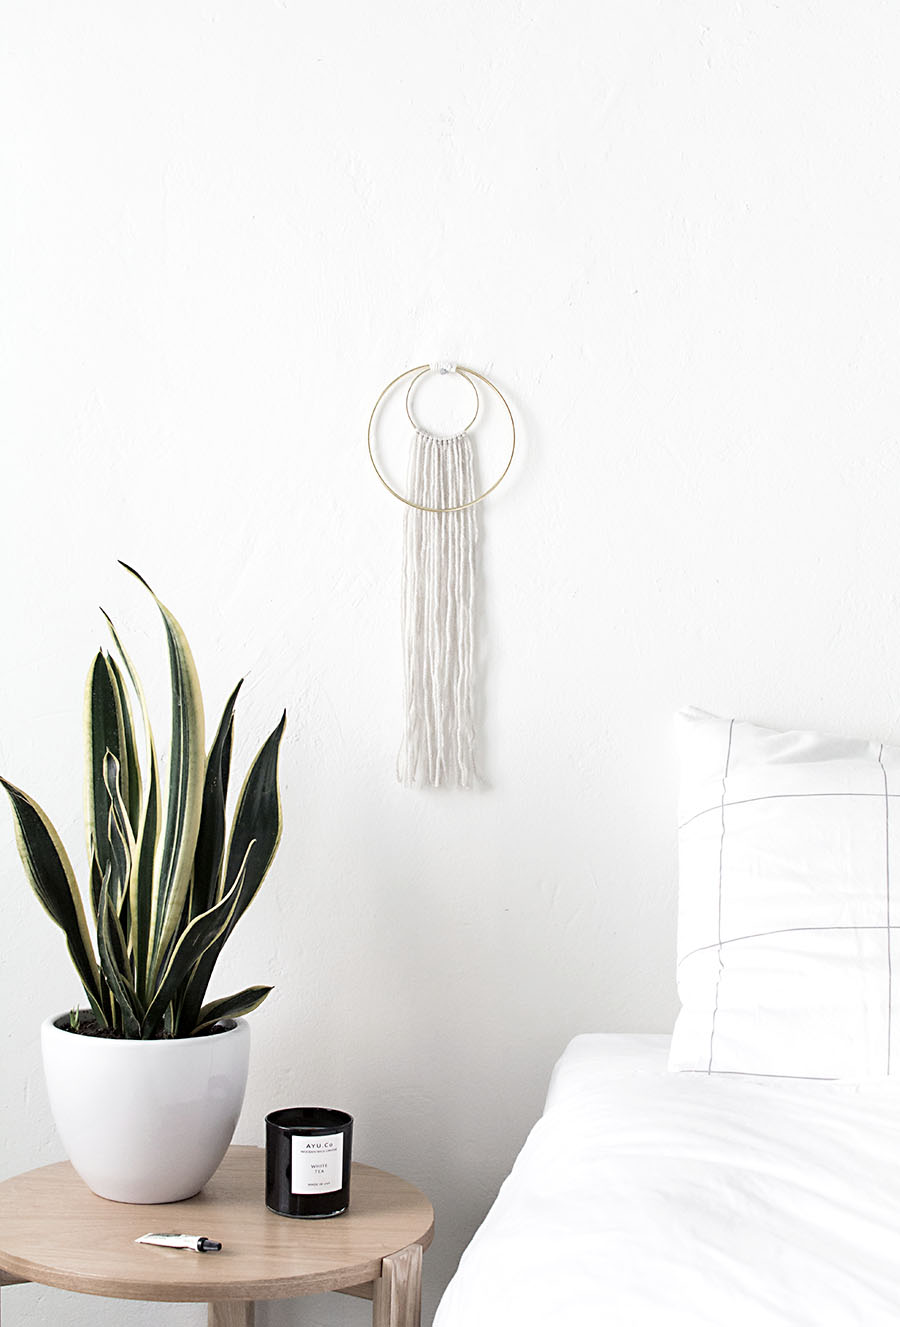 DIY Double Ring Wall Hanging